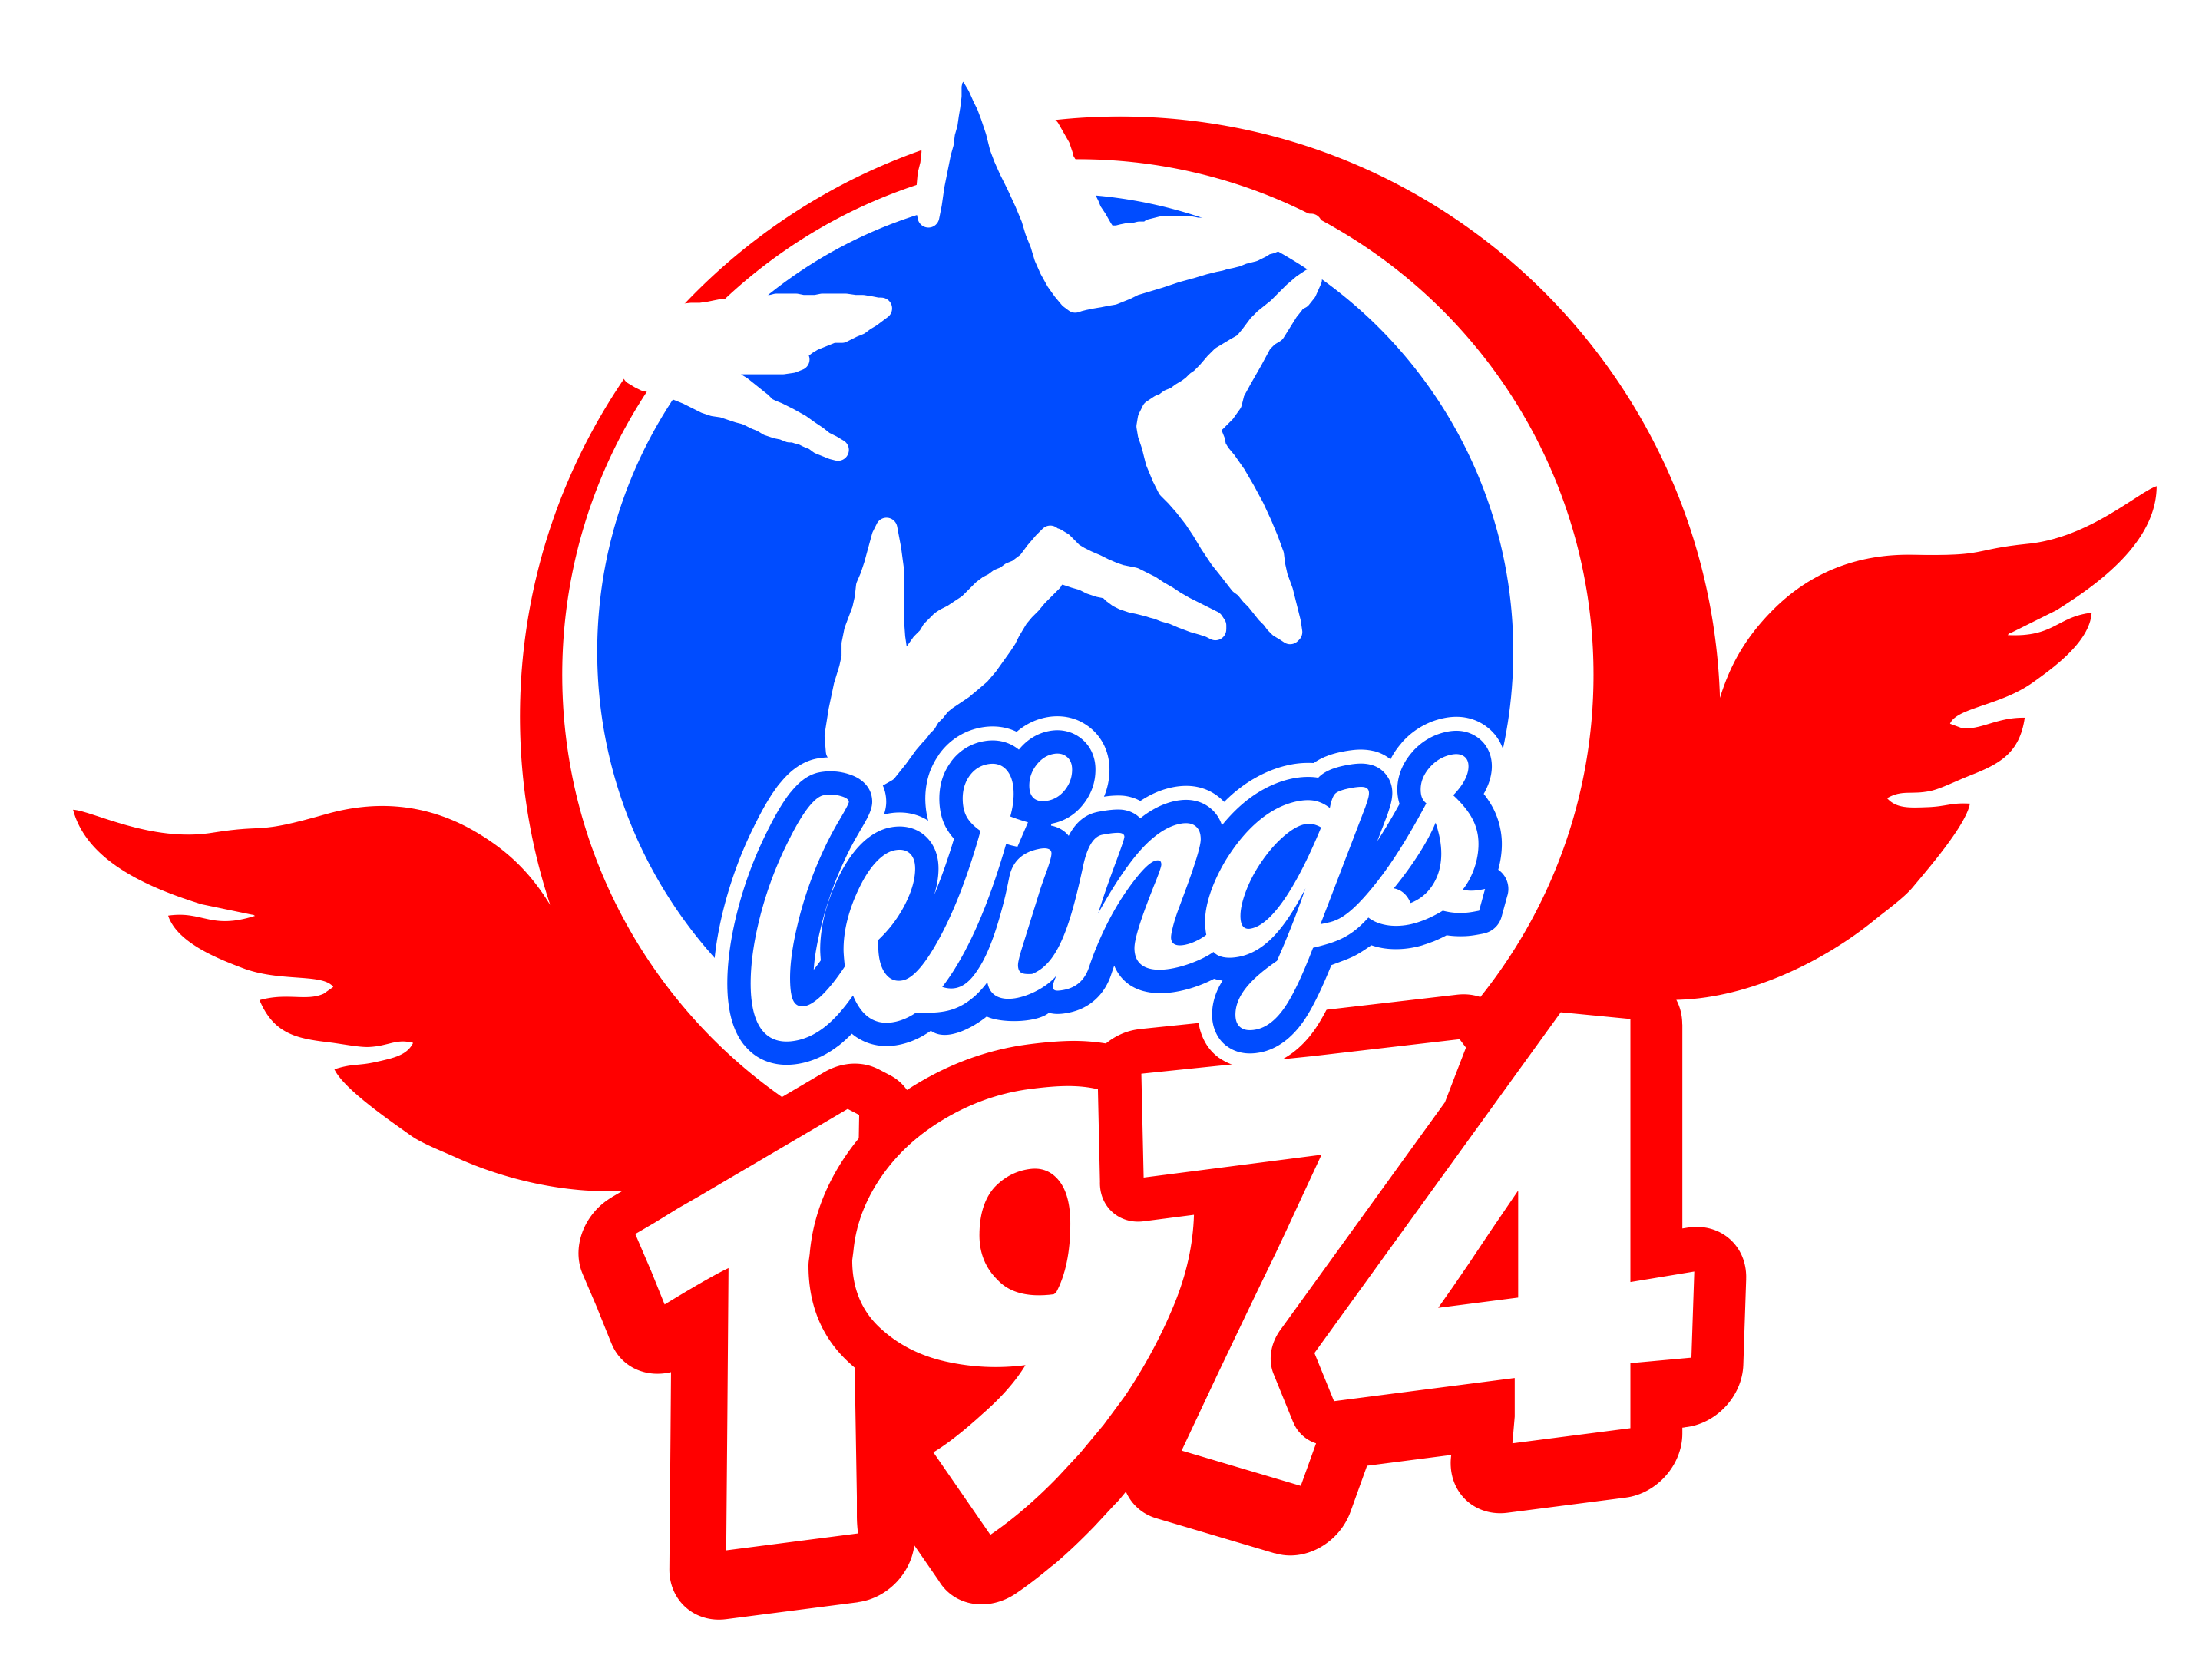 Wings 1974 Unicentro